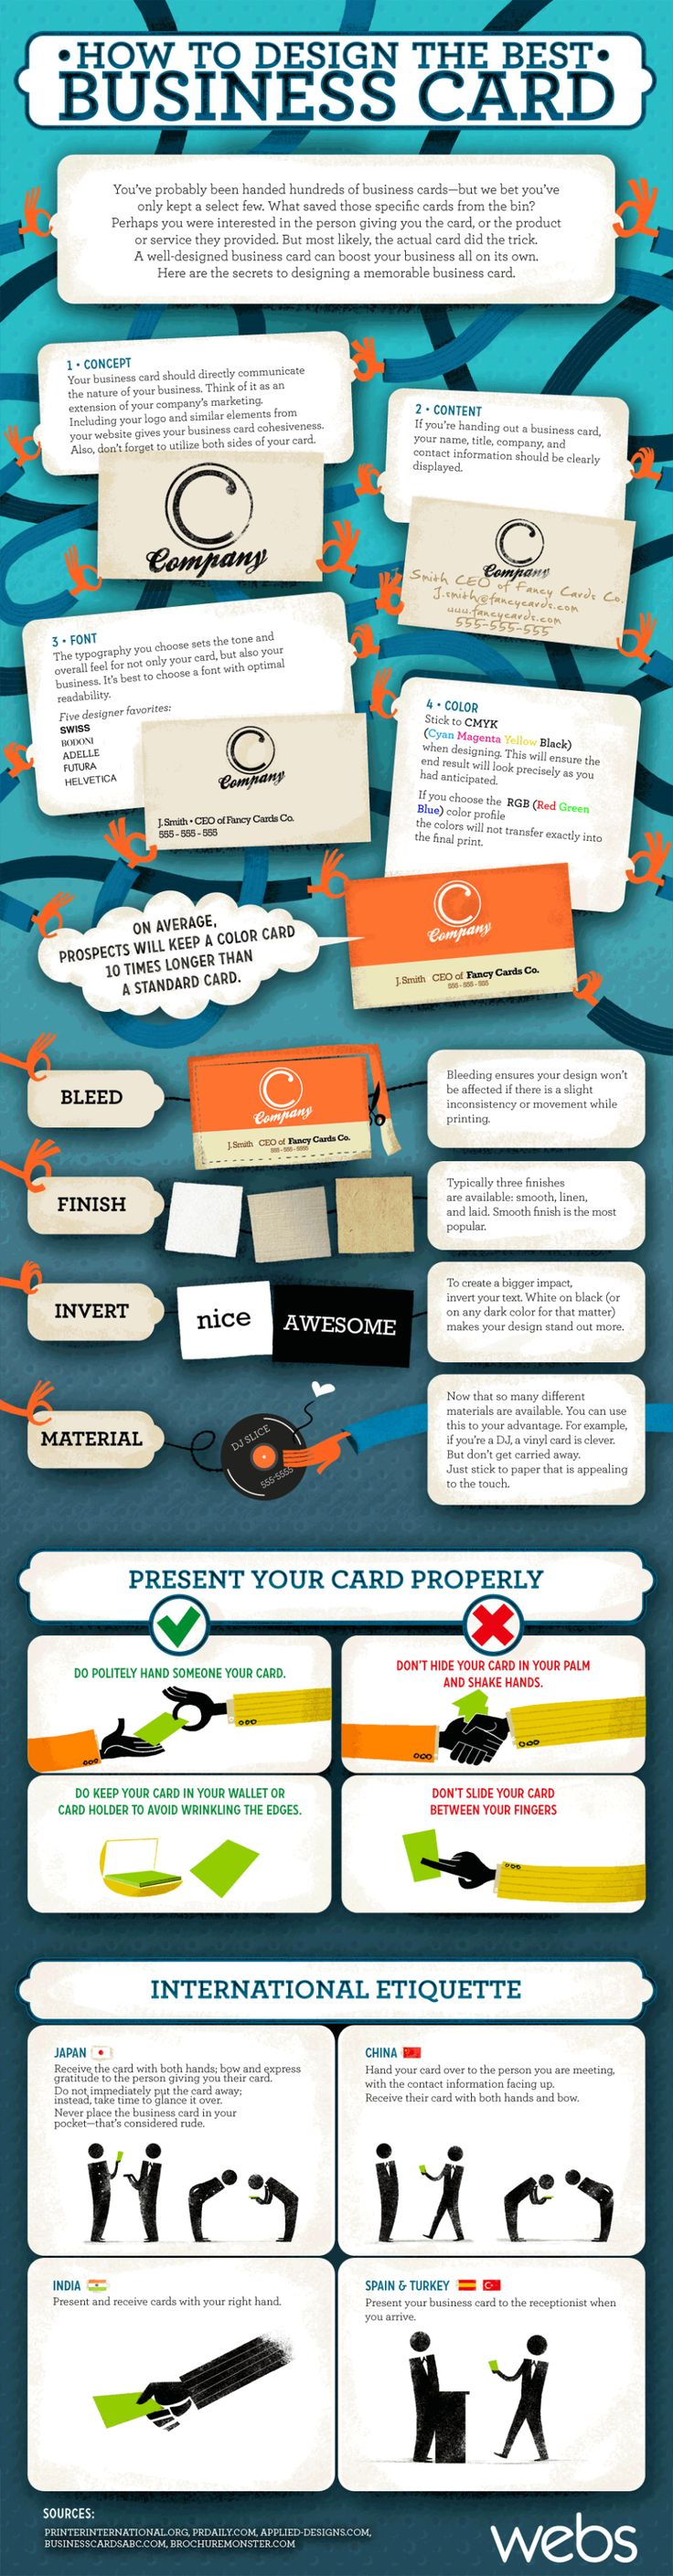 How To Design The Best Business Card | #Infographic via @BizITTrainingAZ